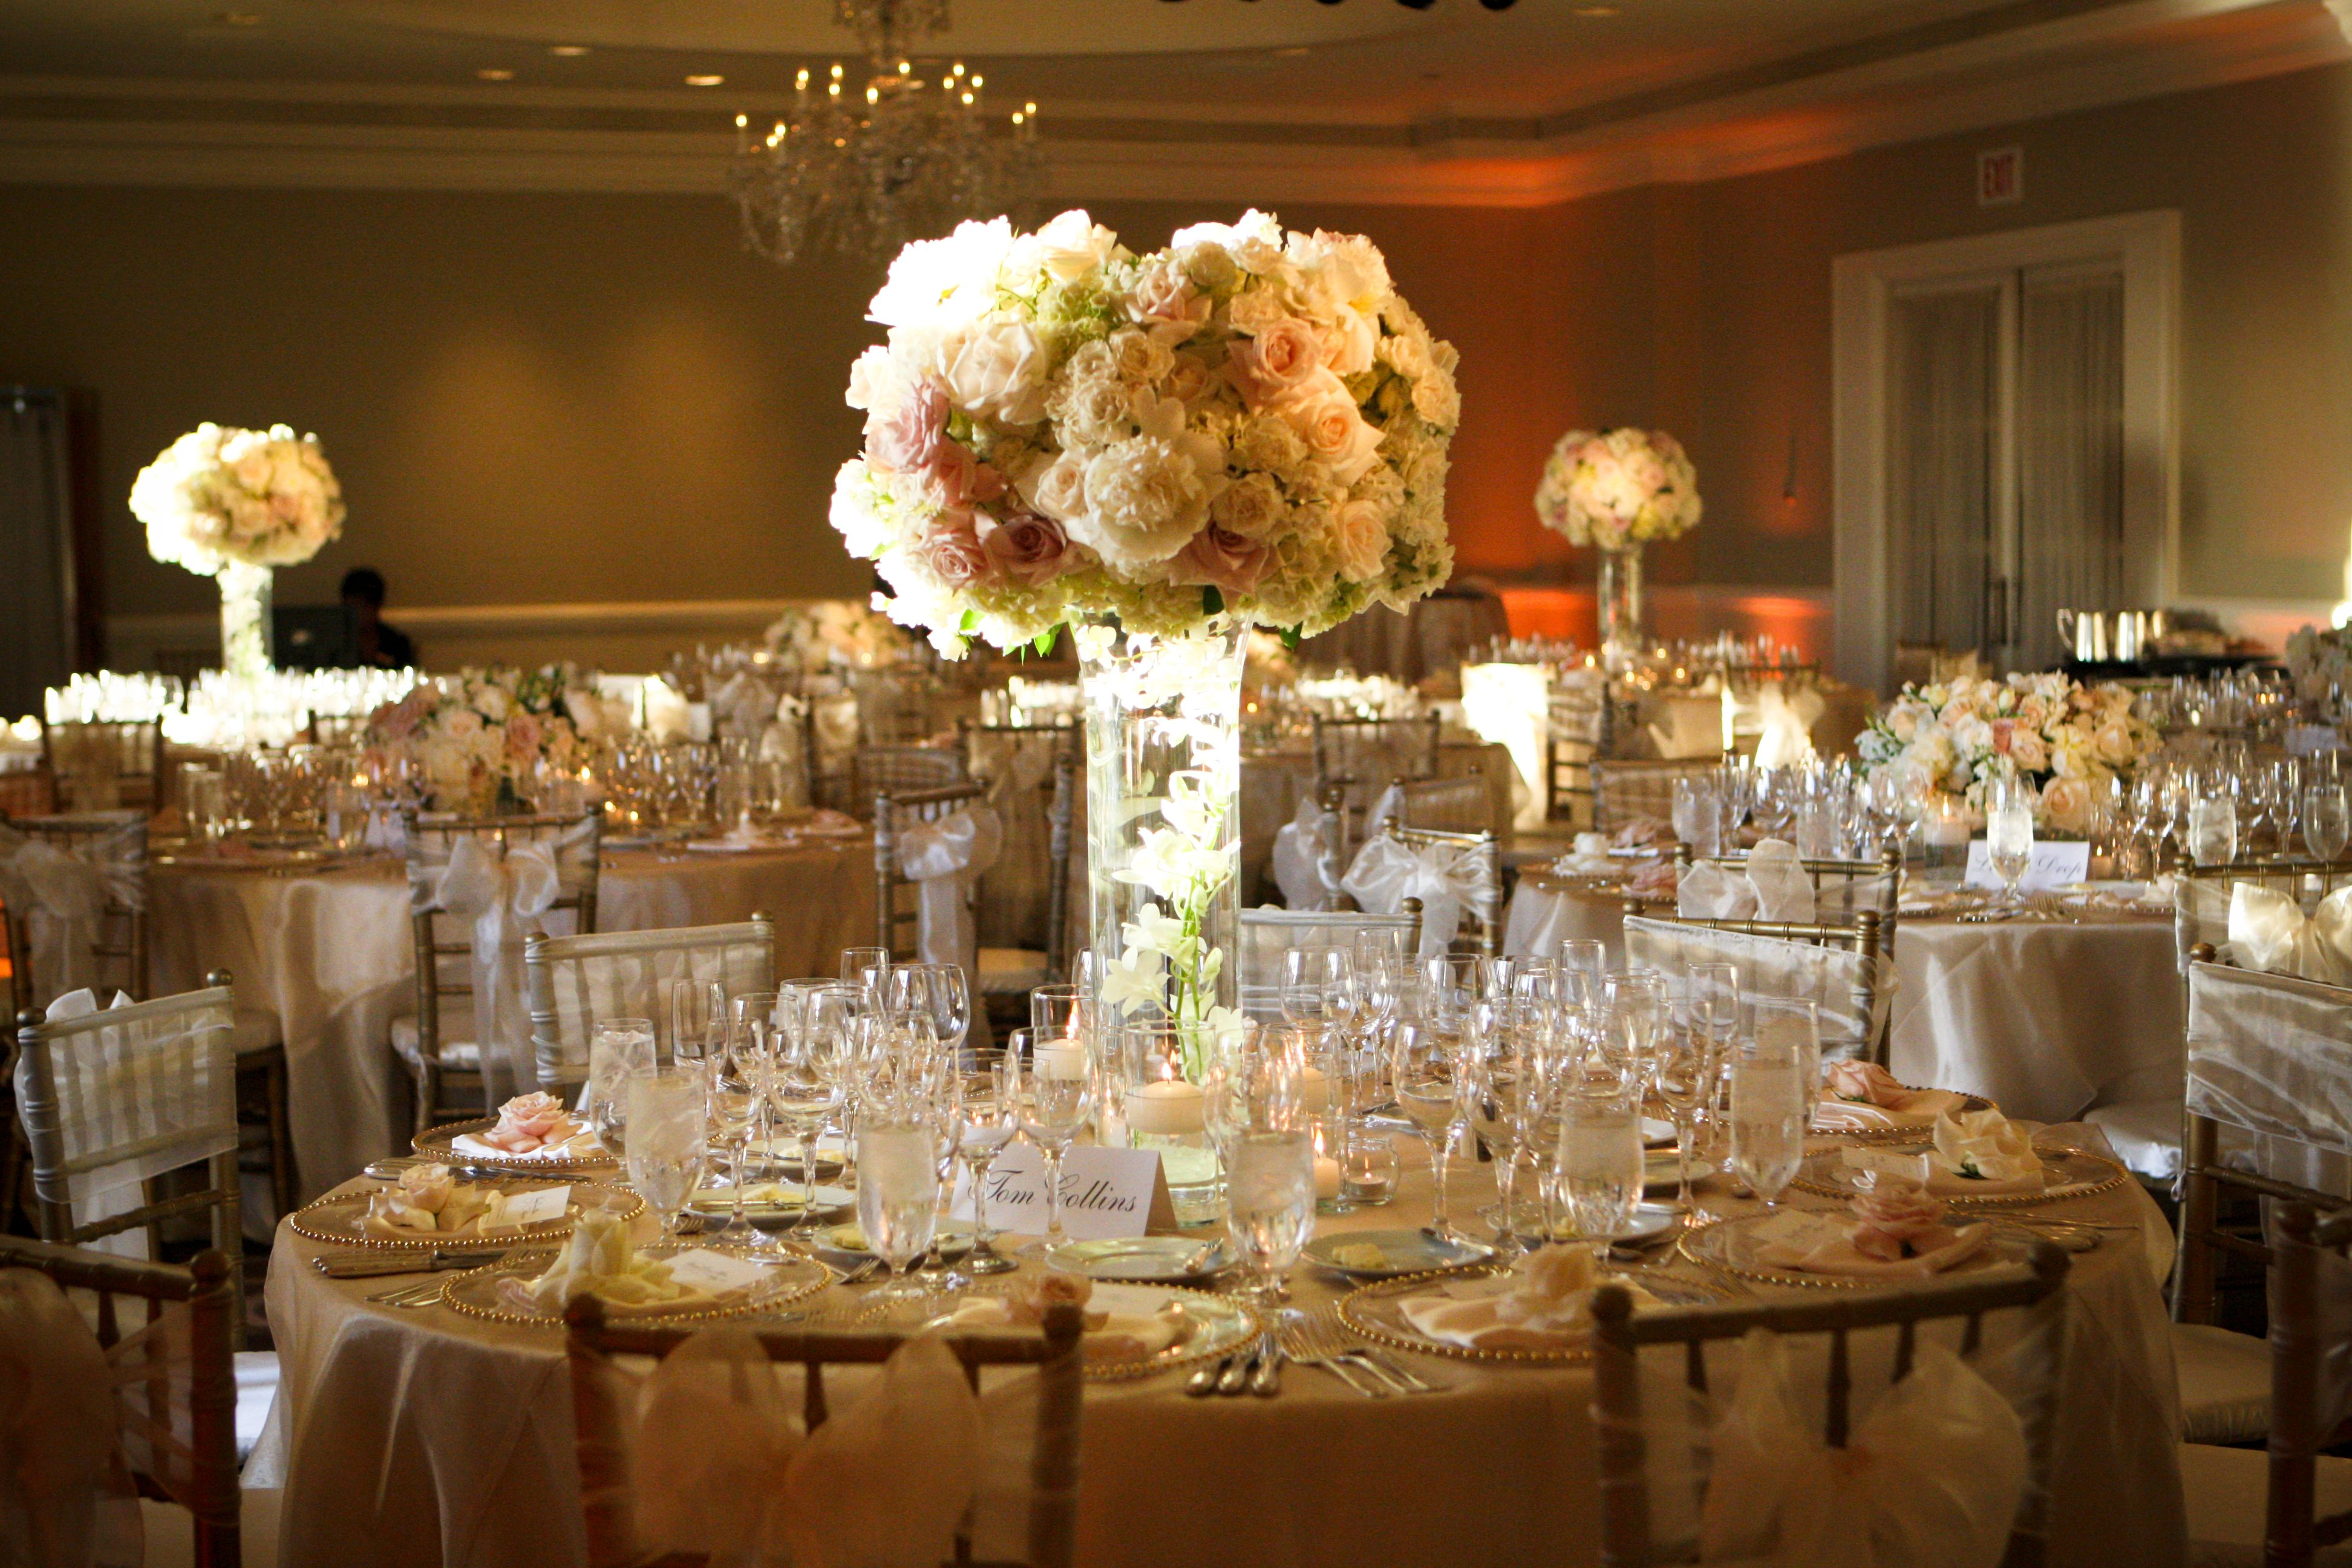 Vintage Wedding Reception Decorations Black And Champagne Complimented The Tones With